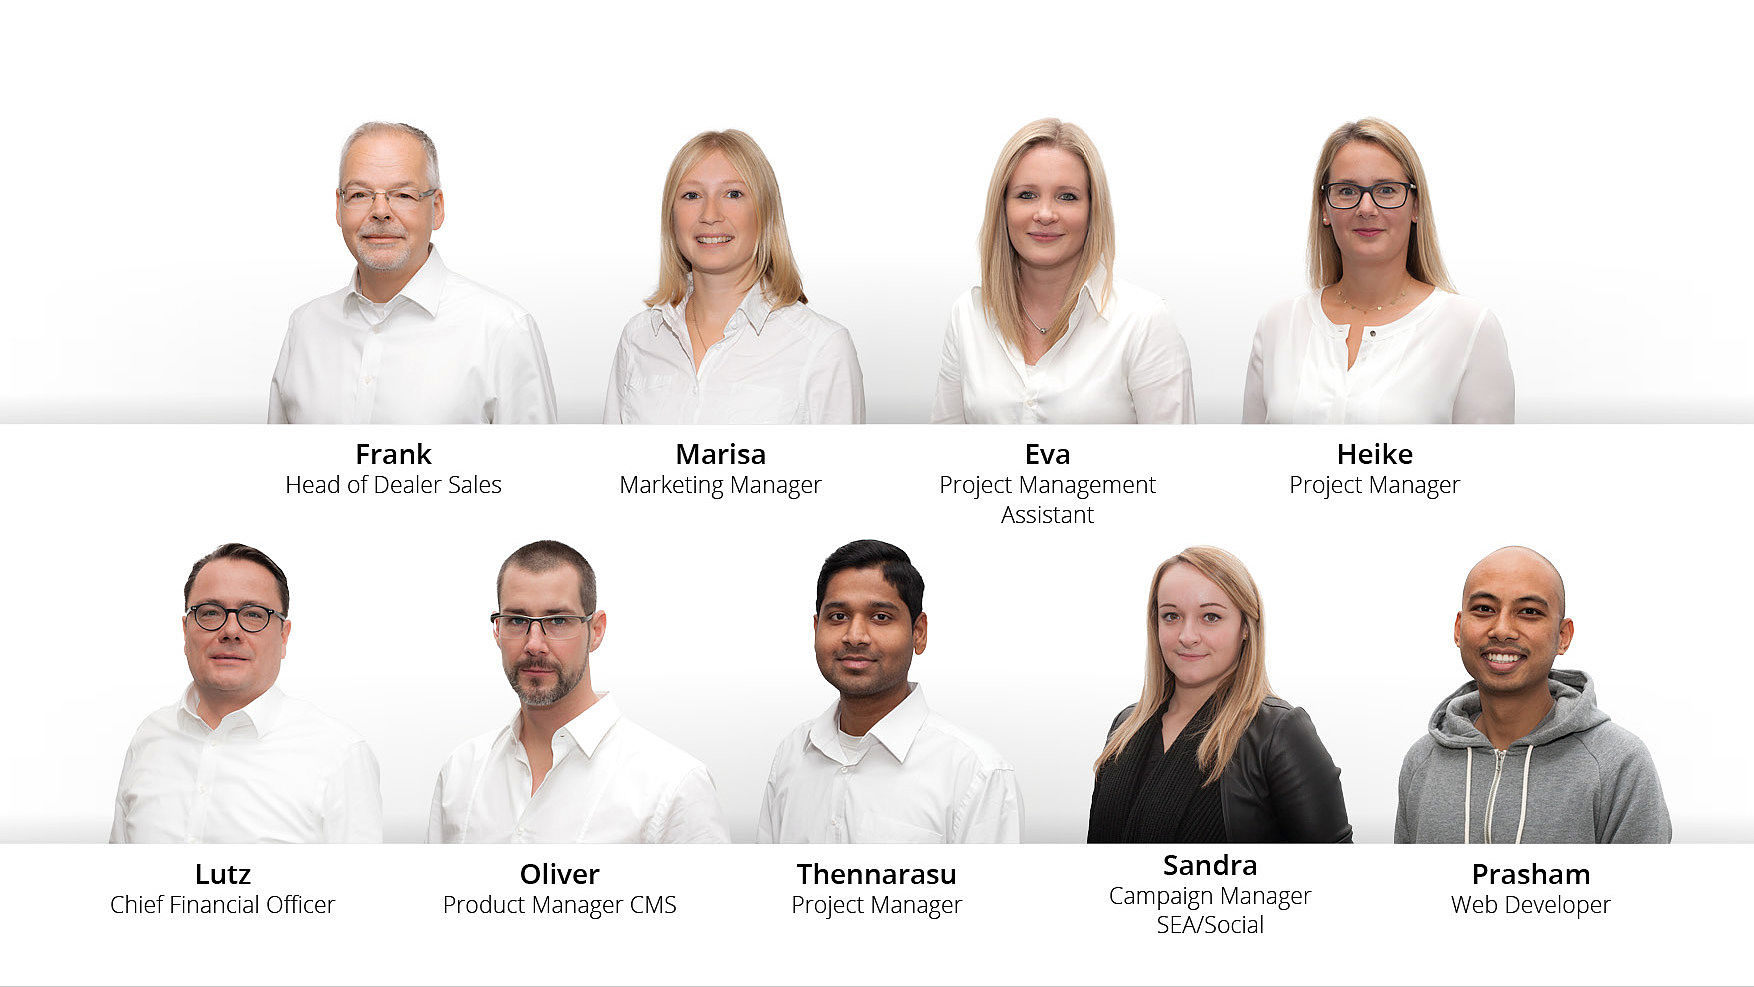 Unsere neuen Mitglieder im Modix-Team. Frank als Head of Dealer Sales, Marisa als Marketing Manager, Eva als Project Management Assistant, Heike als Project Manager, Lutz als Chief Financial Officer, Oliver als Product Manager CMS, Thennarasu als Project Manager, Sandra als Campaign Manager SEA/Social und Prasham als Webdeveloper.